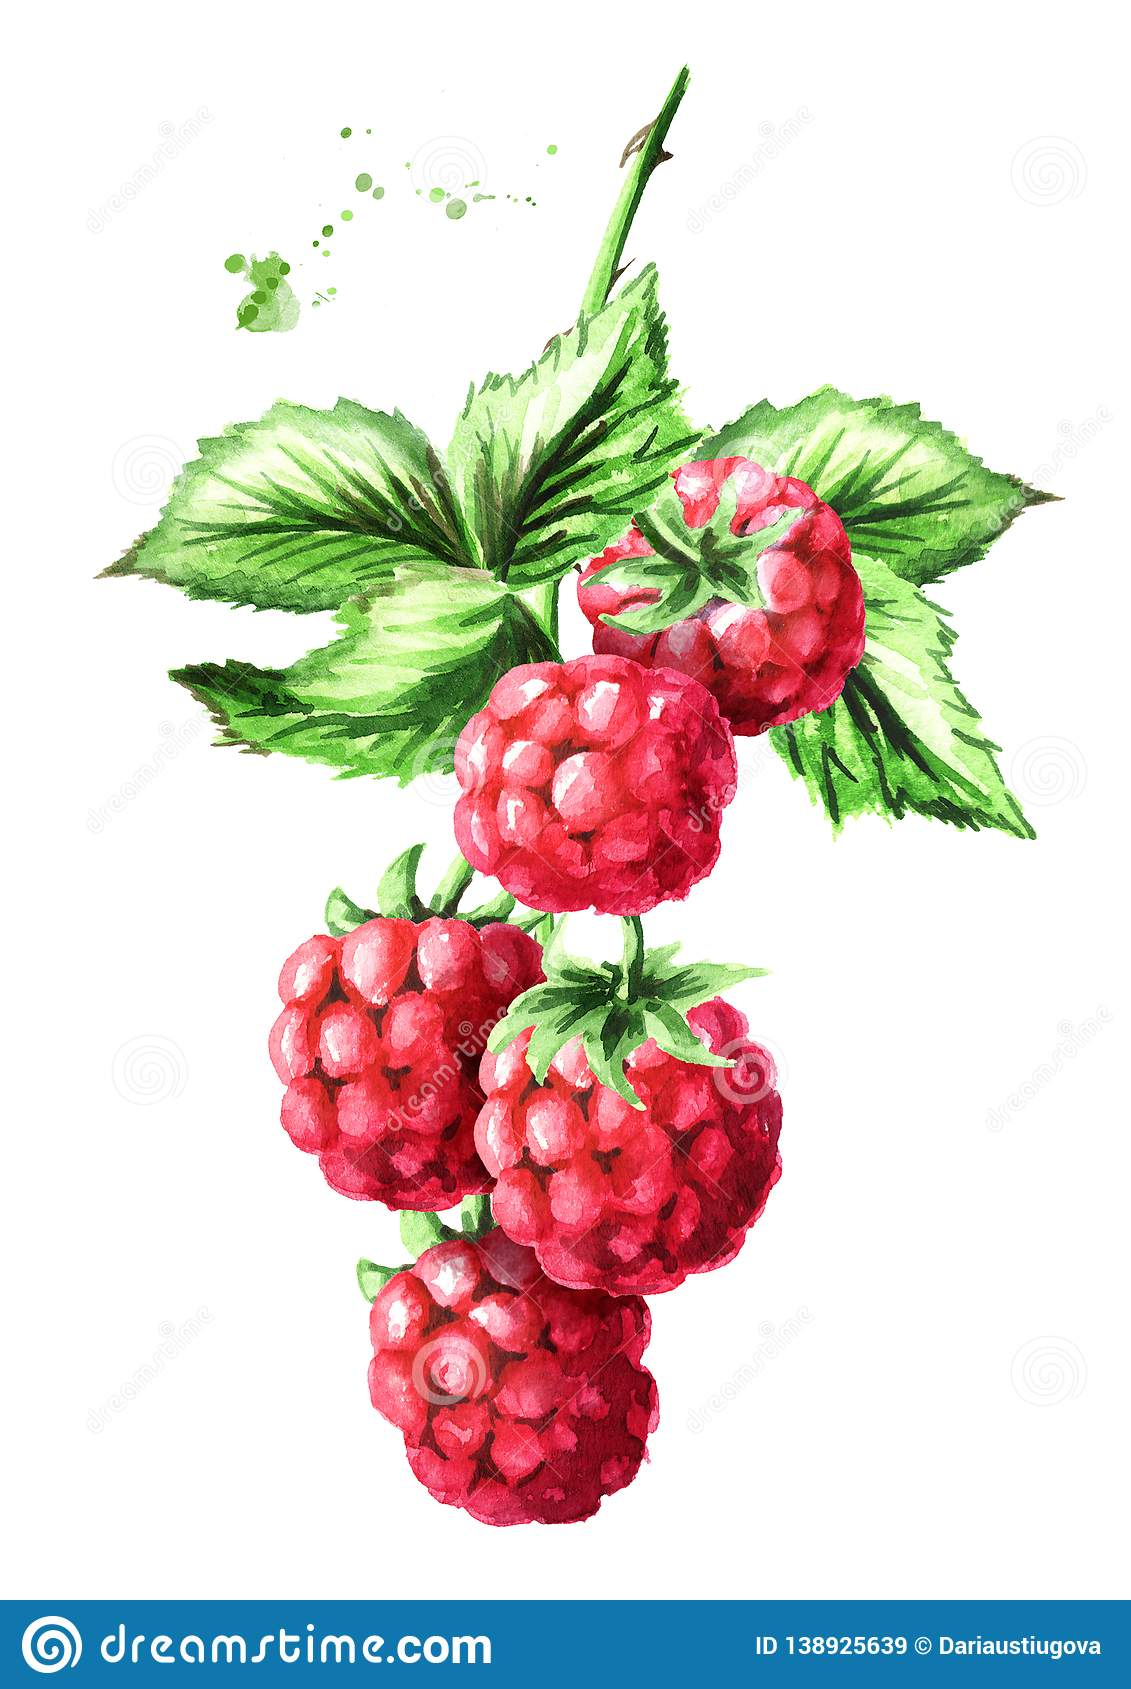 Brunch of two ripe raspberries with green leaves. Watercolor hand drawn illustration isolated on white background.